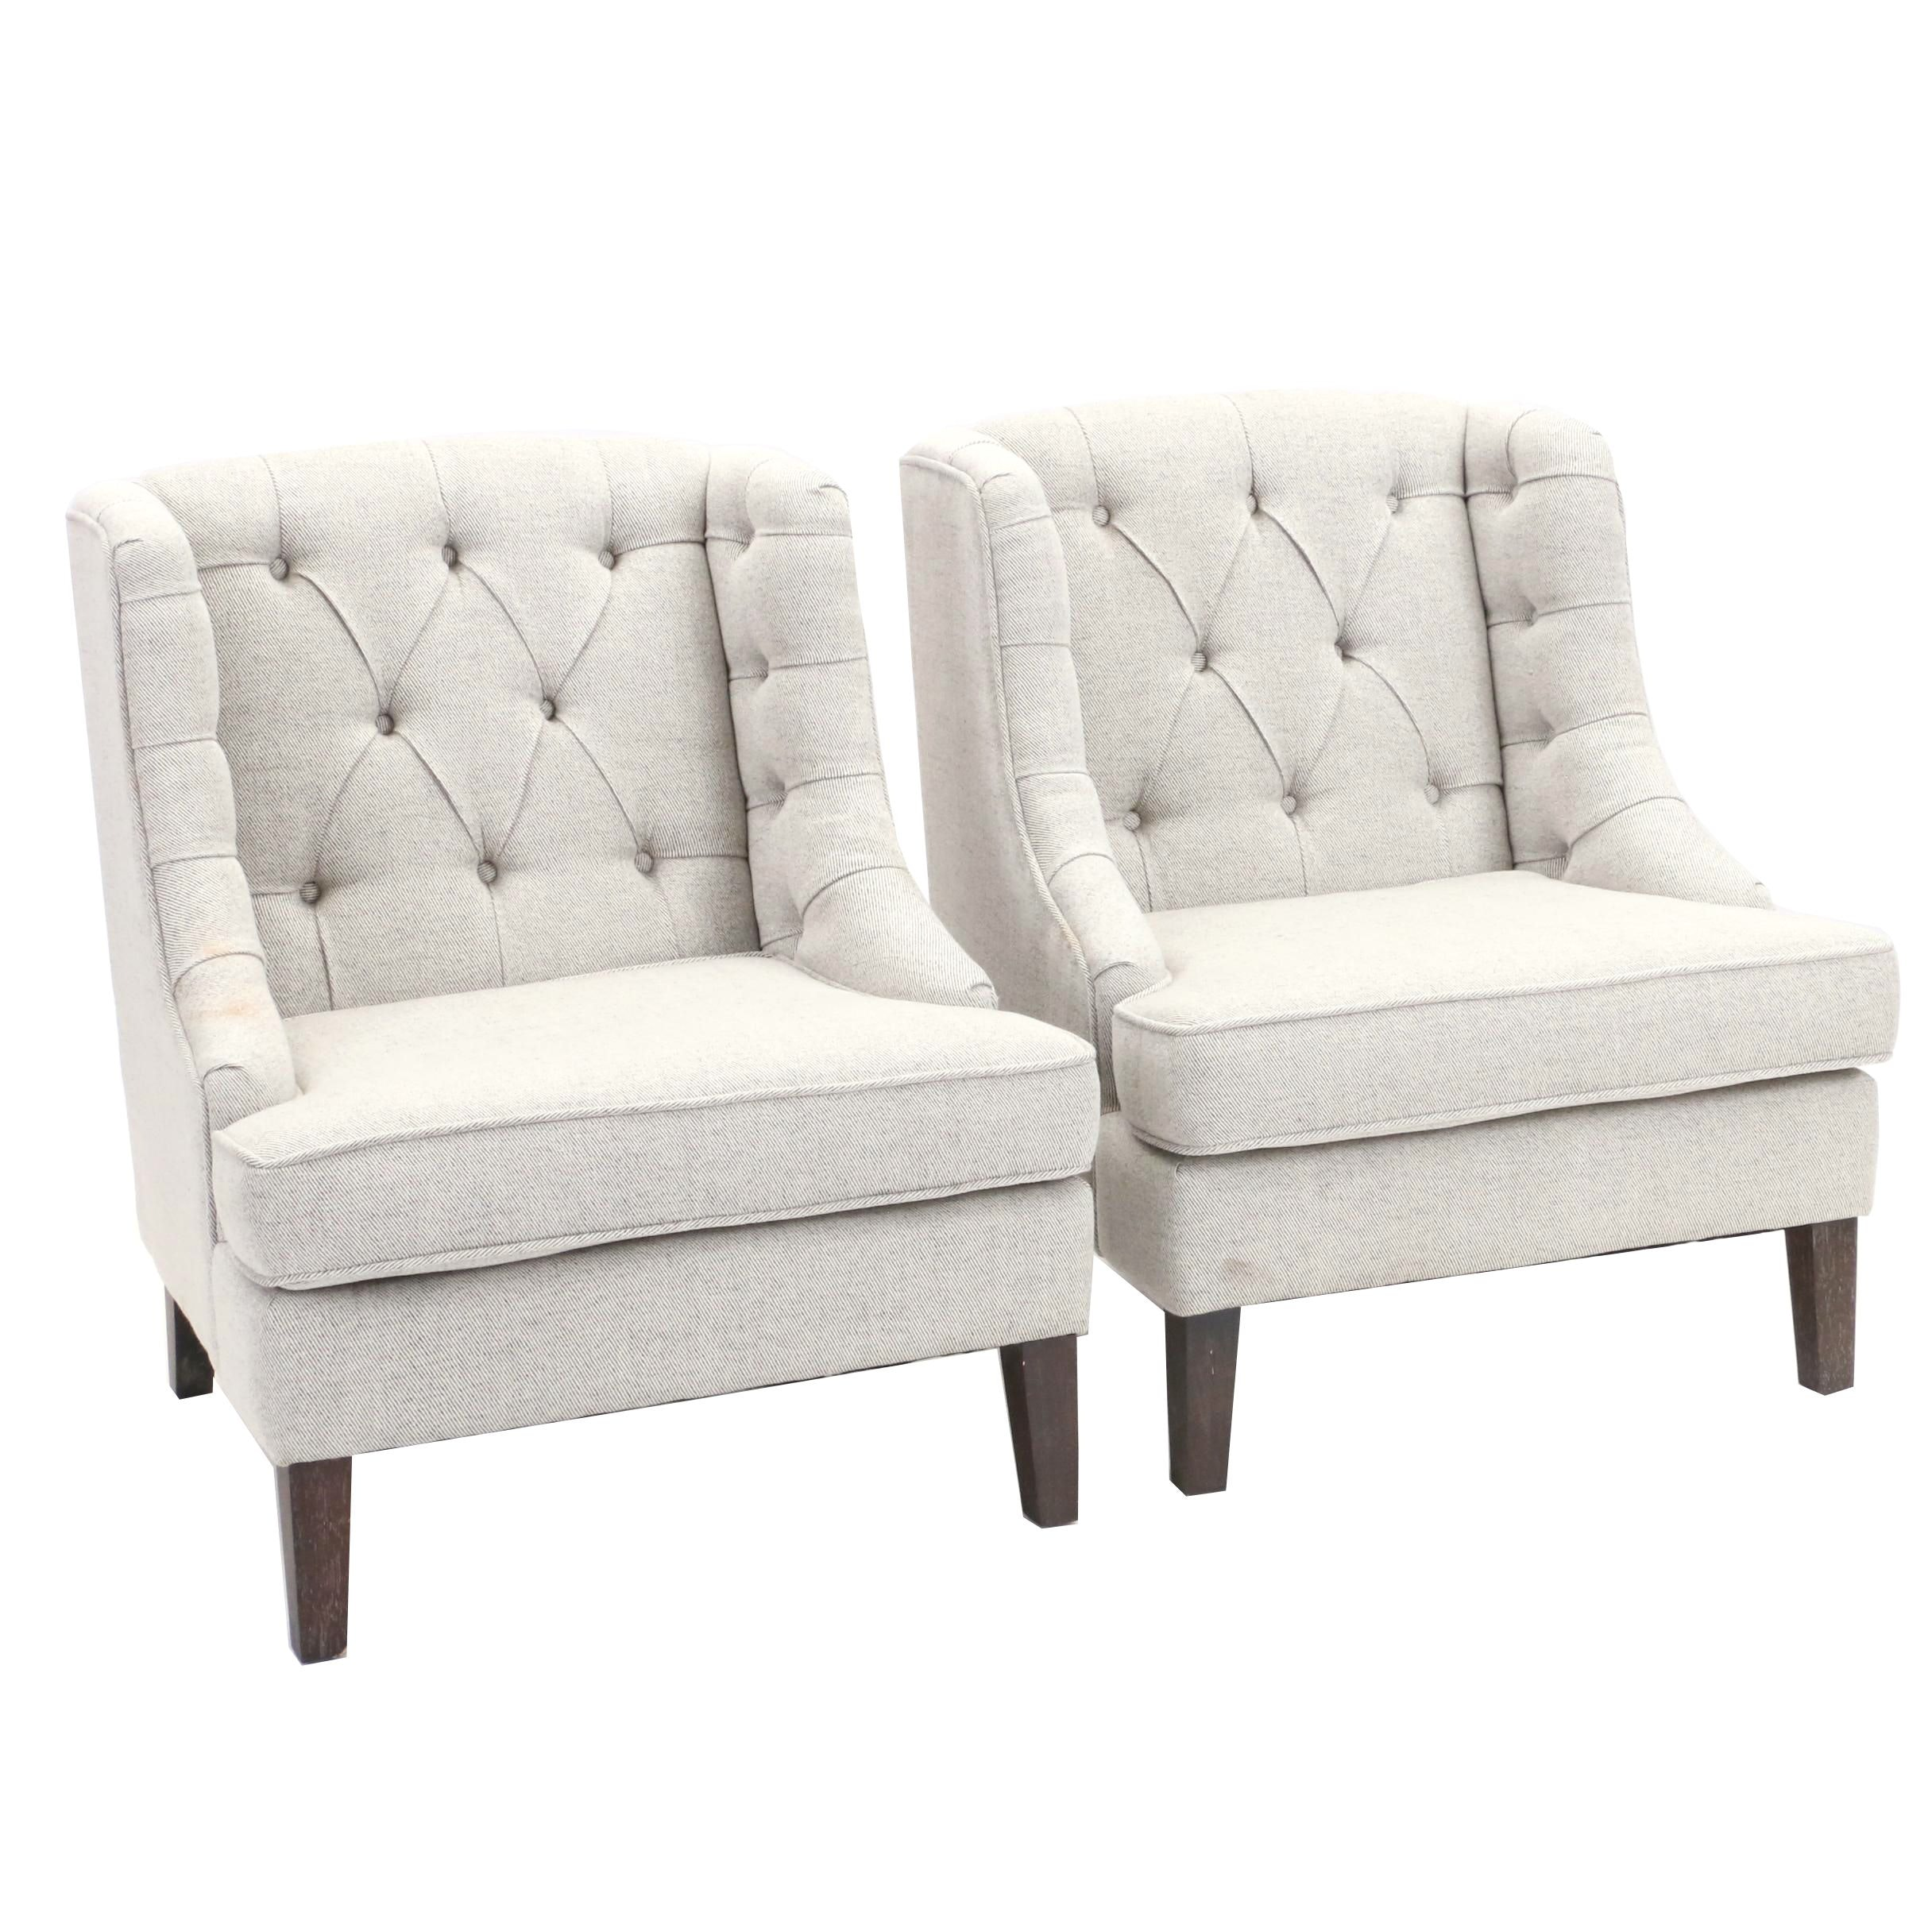 Pair of Wing Back Armchairs